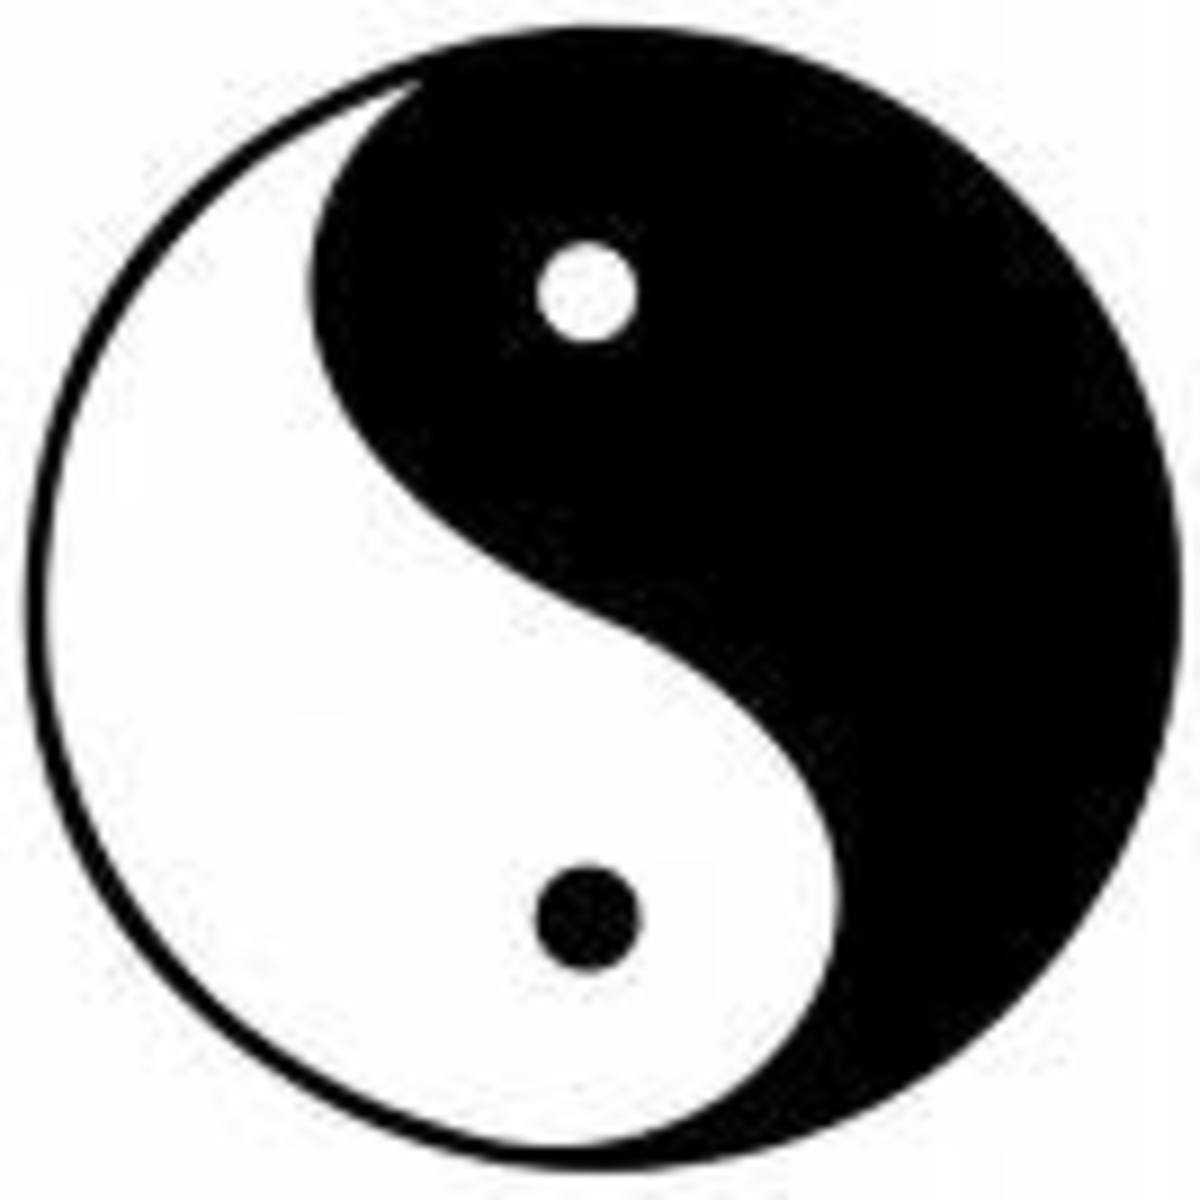 This is the traditional symbol for the opposing, yet complimentary forces of yin and yang, sometimes described as 2 fishes swimming head to tail.